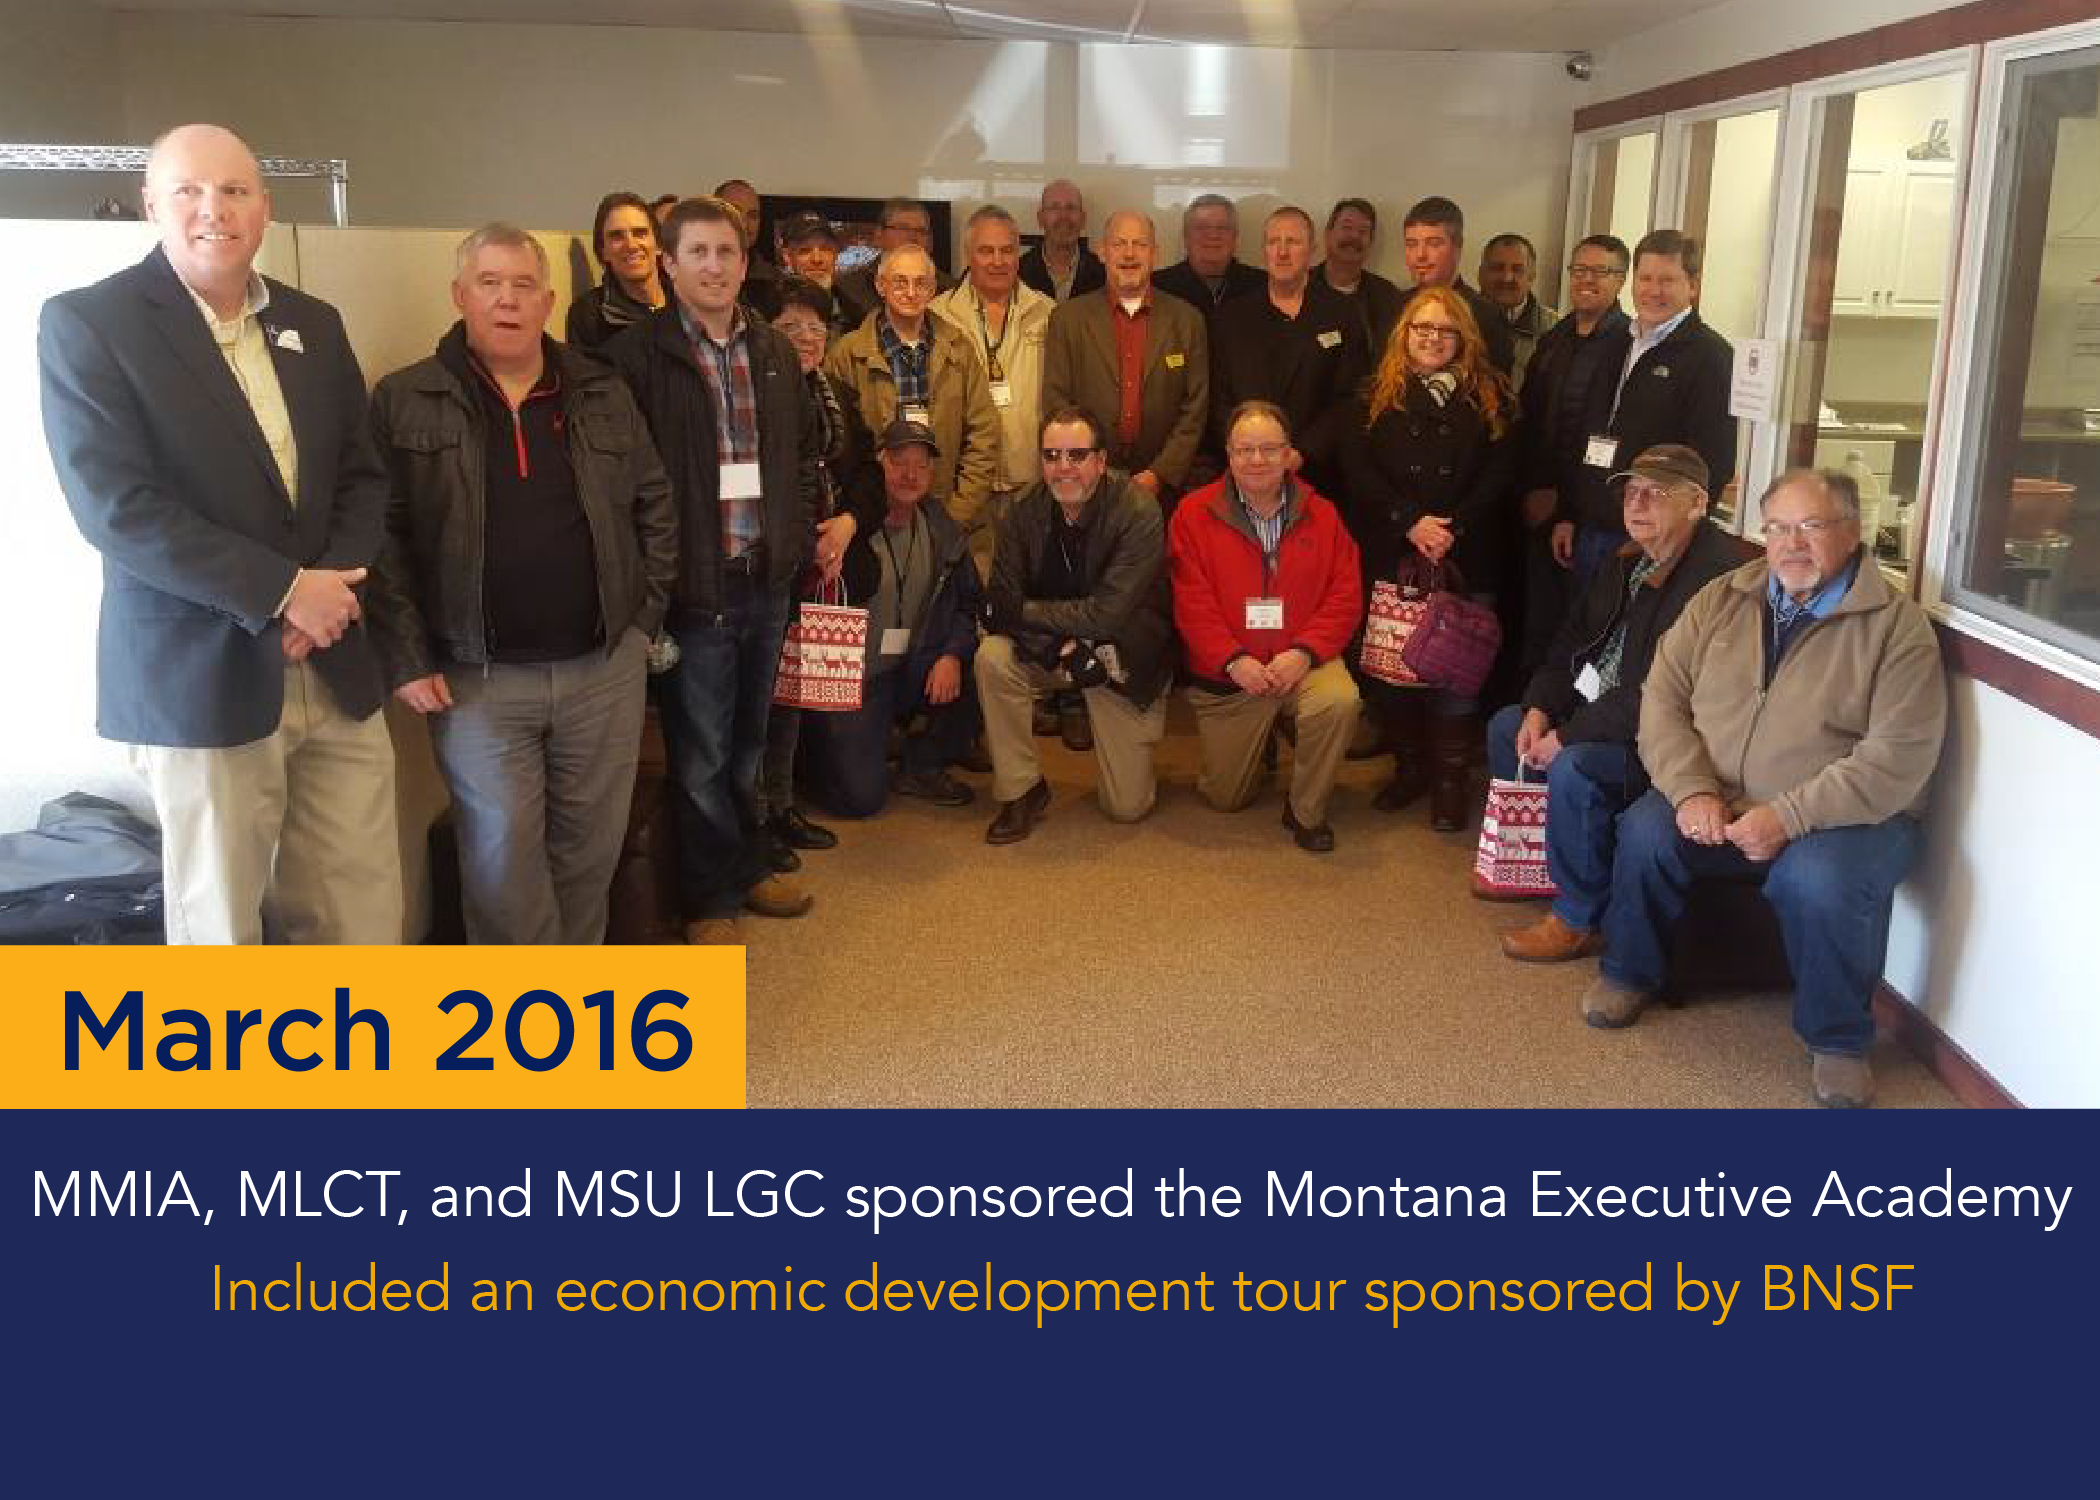 March 2016MMIA, MLCT, and MSU LGC sponsored the Montana Executive AcademyIncluded an economic development tour sponsored by BNSF